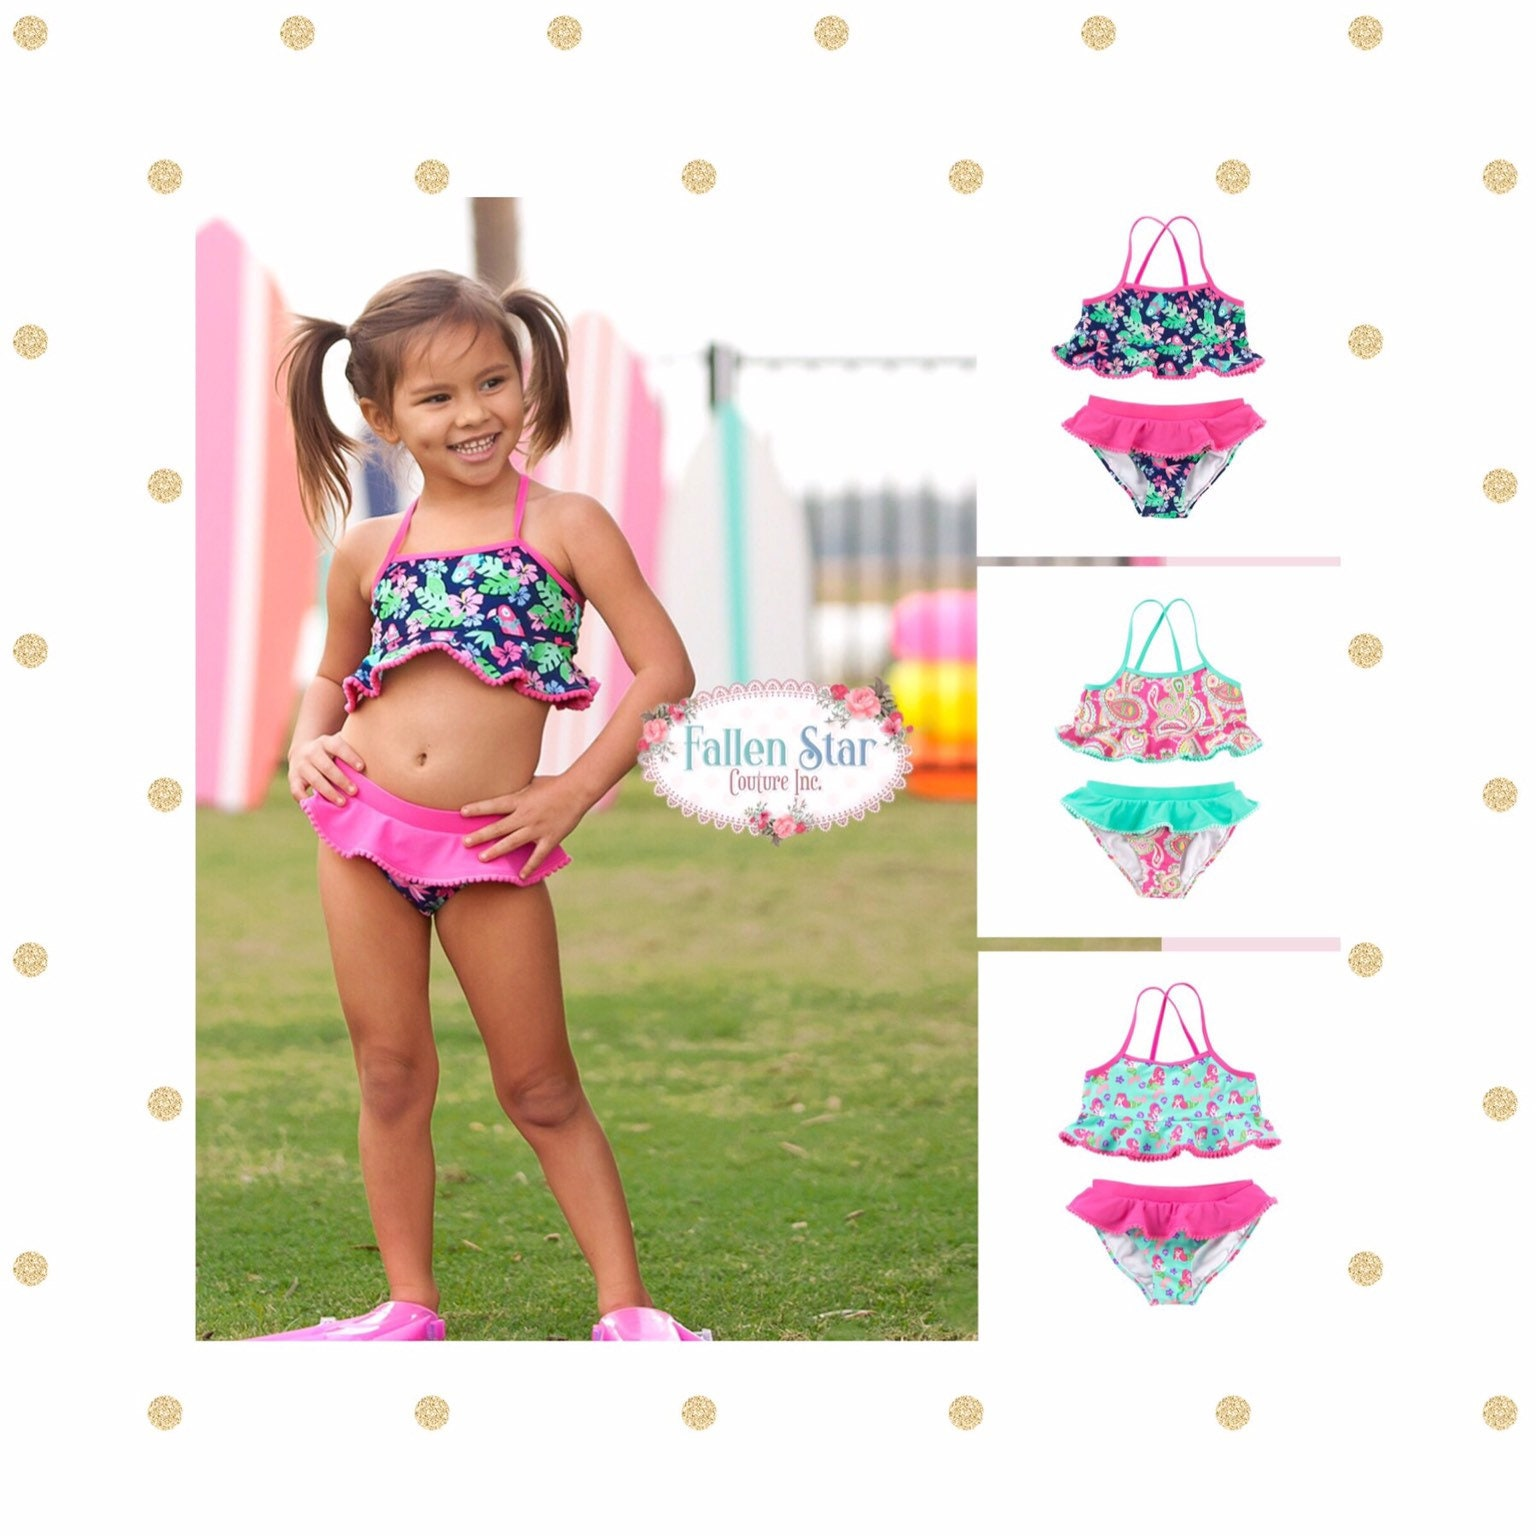 586e3a8b Monogrammed Girls Bathing Suit , Personalized Girls Bathig Suit , Girls  Tankini Set ,Toddler Bathing Suit , Girls Bikini